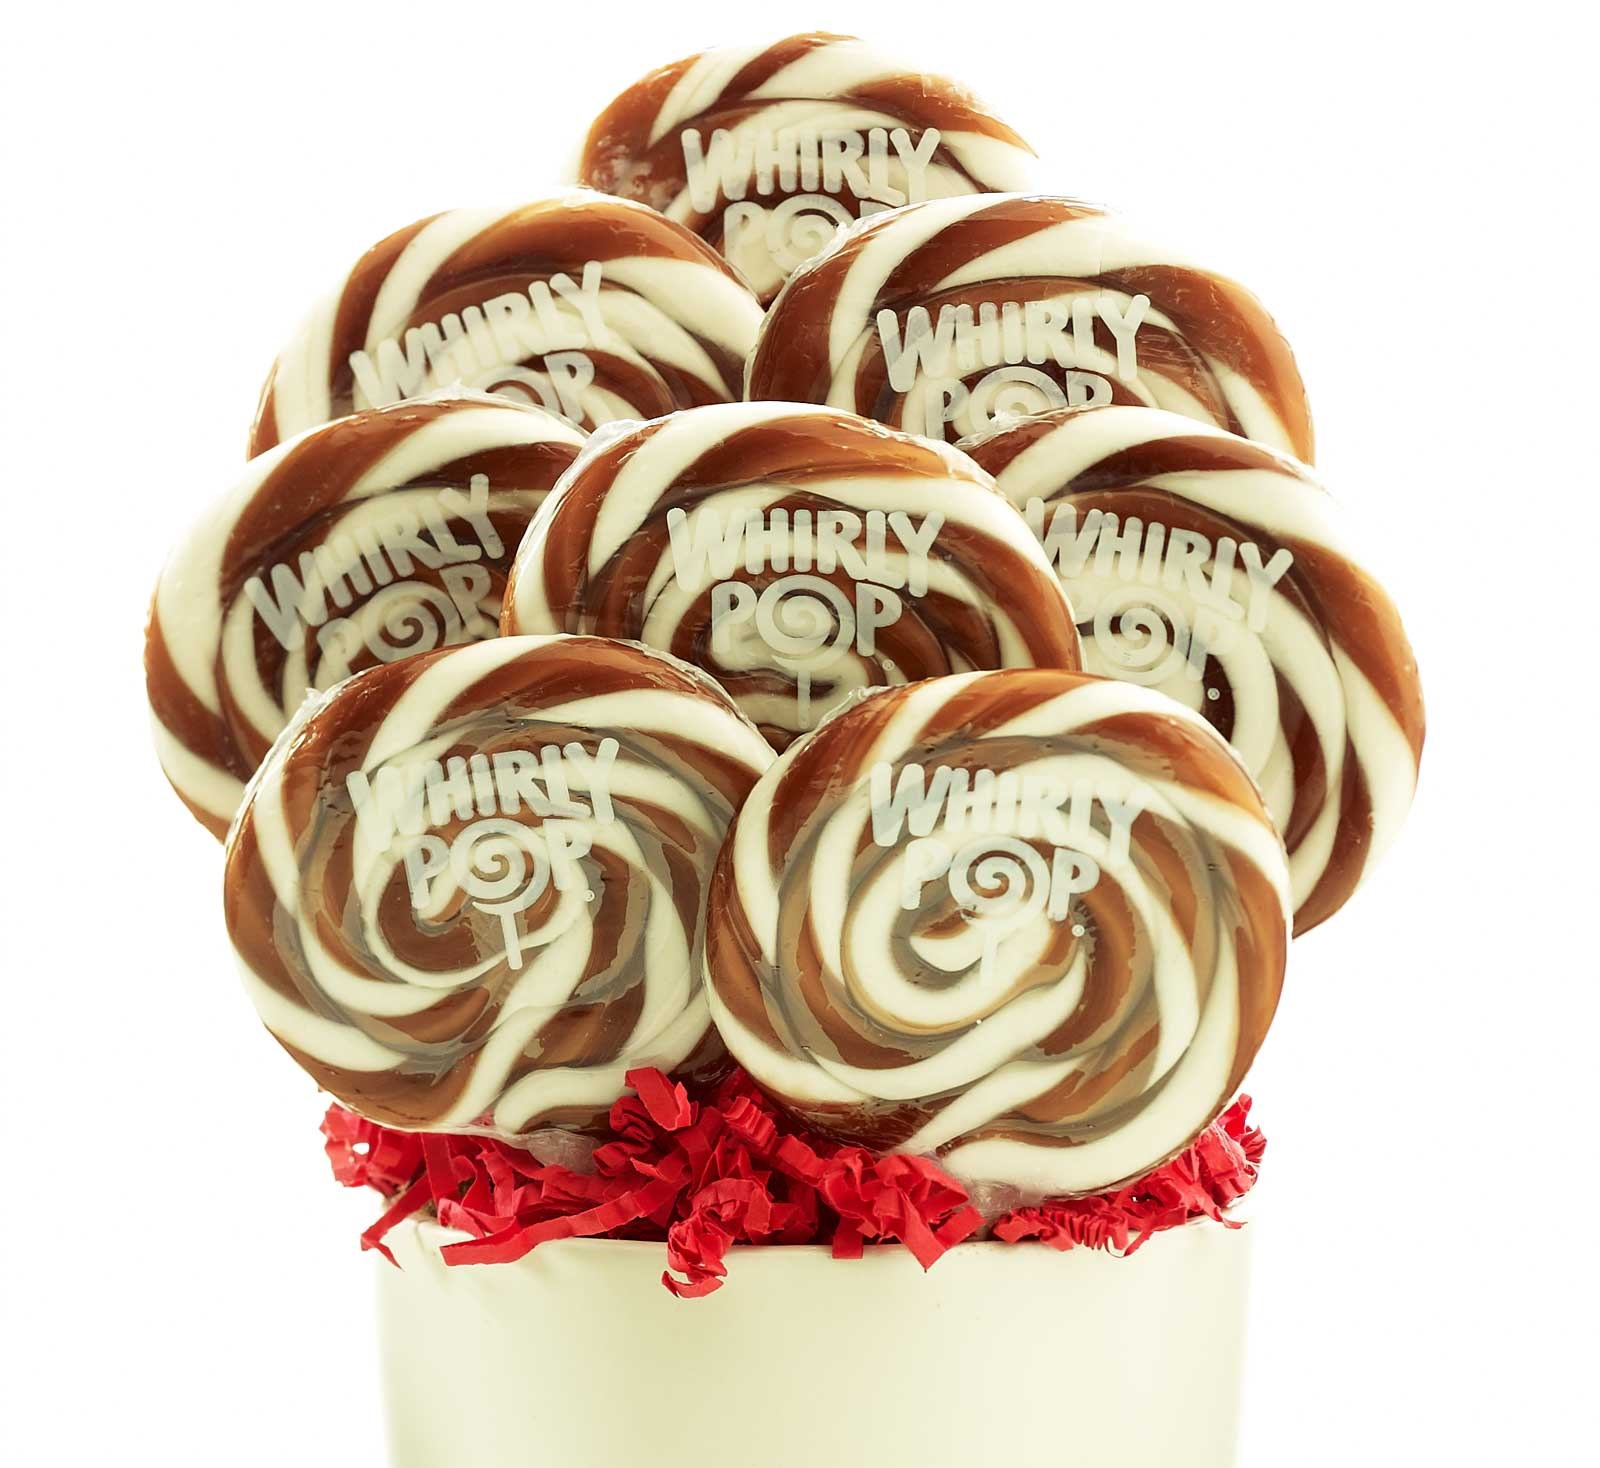 Image of Brown and White Whirly Pops